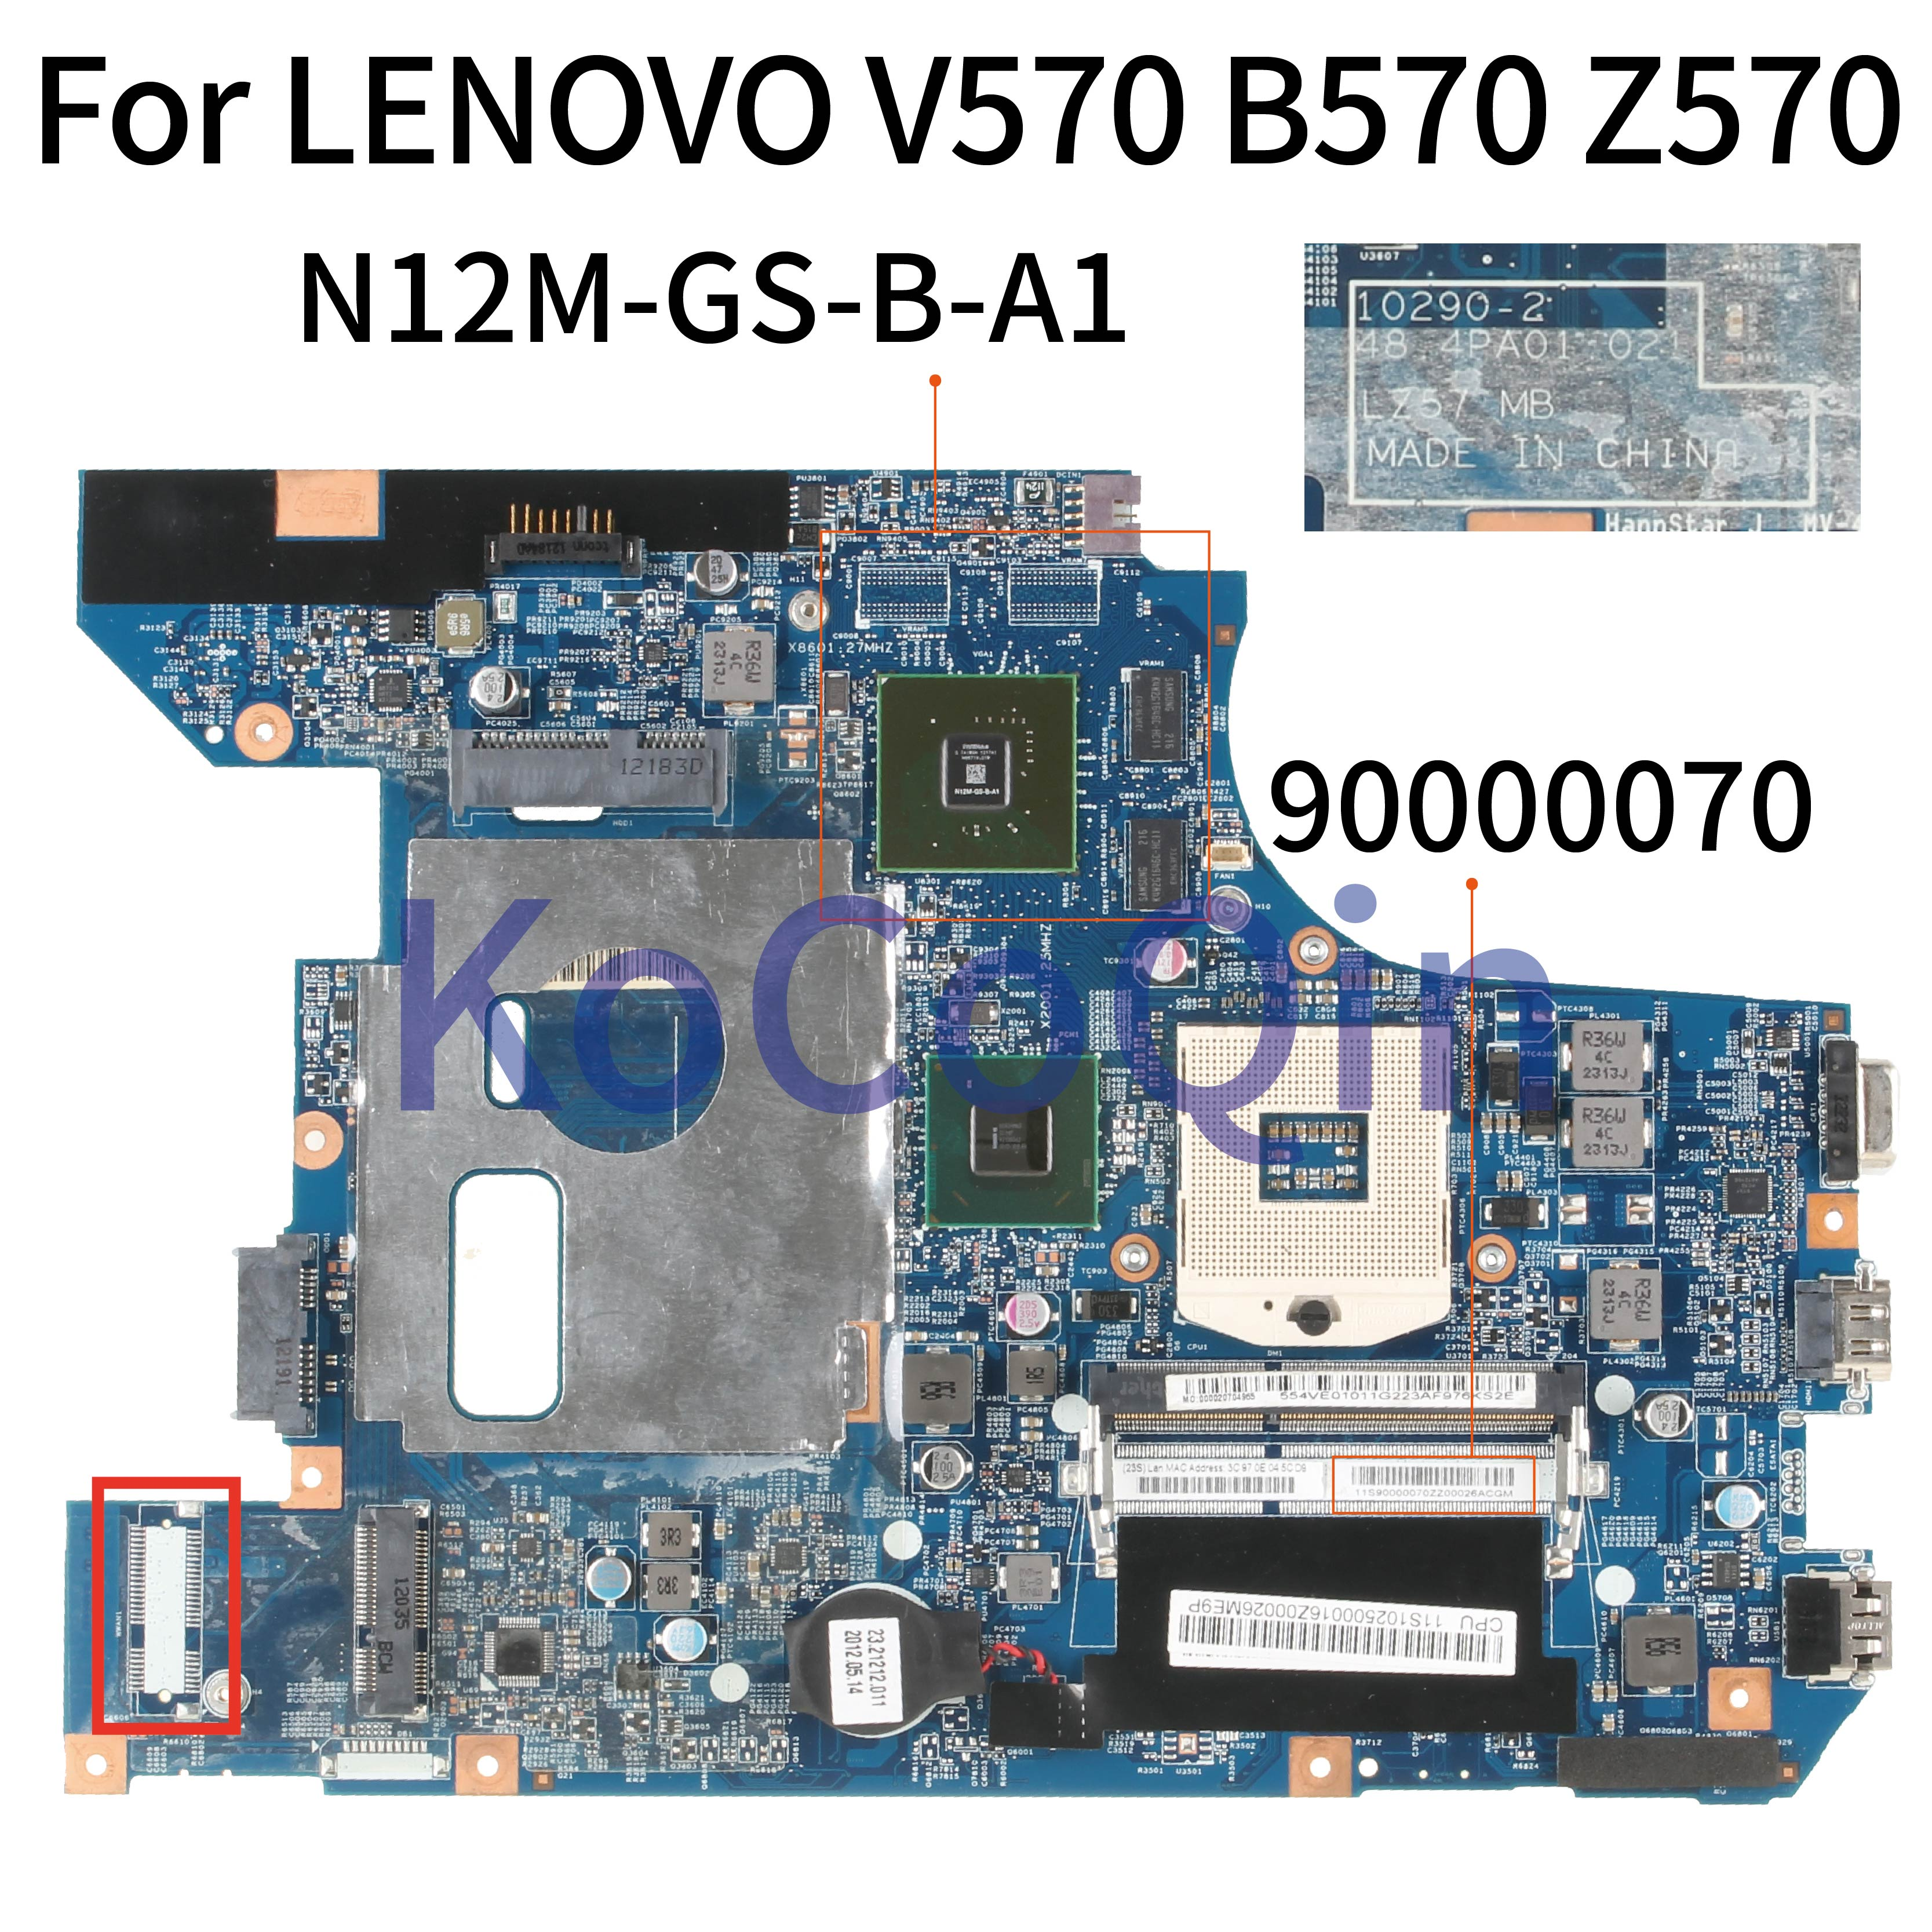 KoCoQin Laptop Motherboard For LENOVO B570 B570E HM65 Mainboard 90000070 10290-2 48.4PA01.021 LZ57 N12M-GS-B-A1